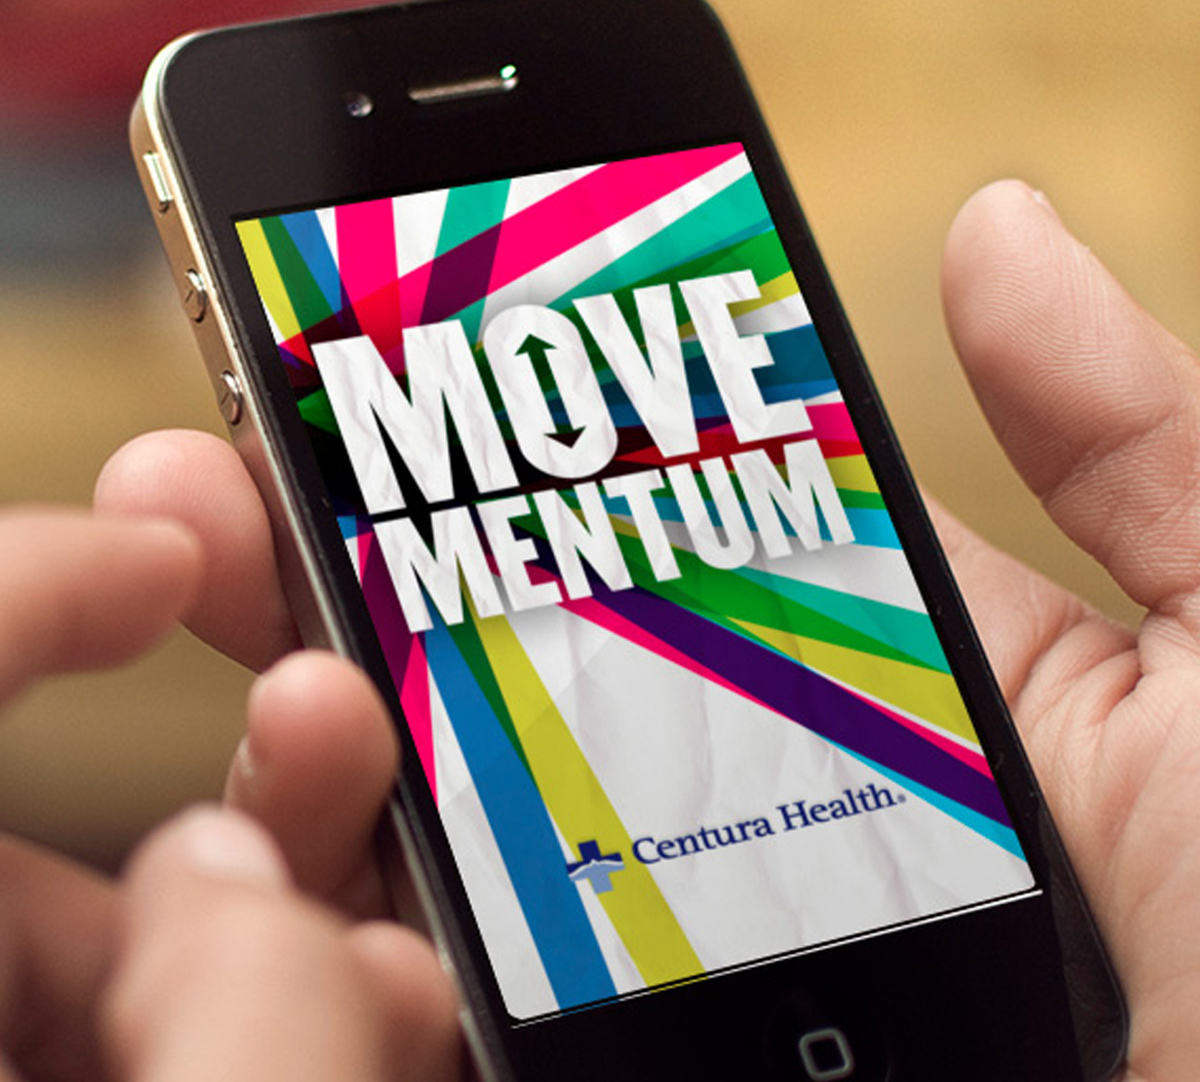 Centura Health Movementum App